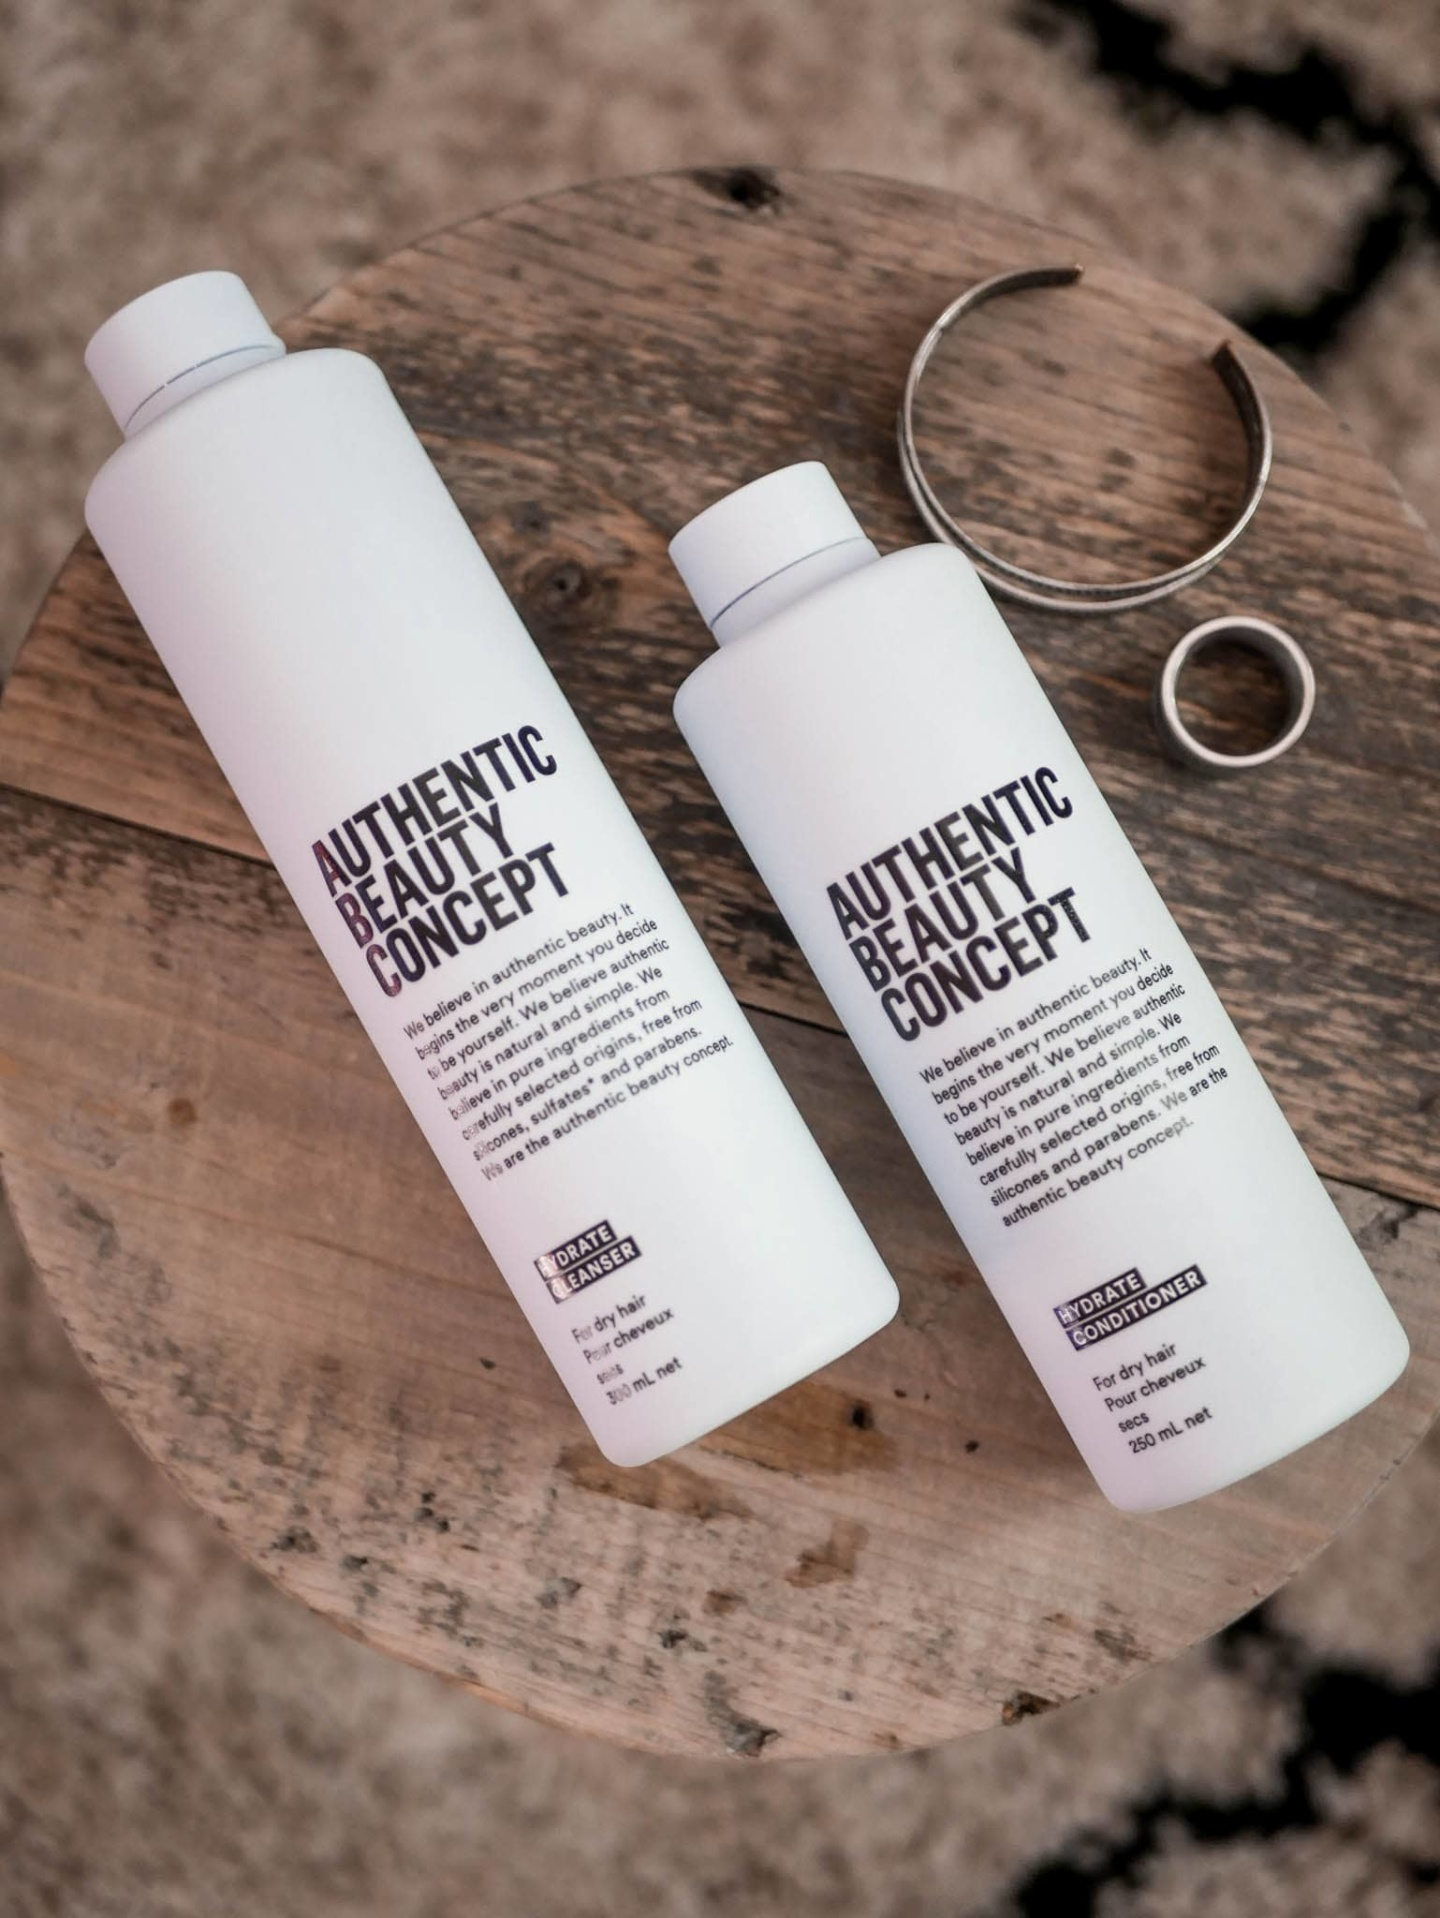 Authentic beauty concept bain hydratant avis